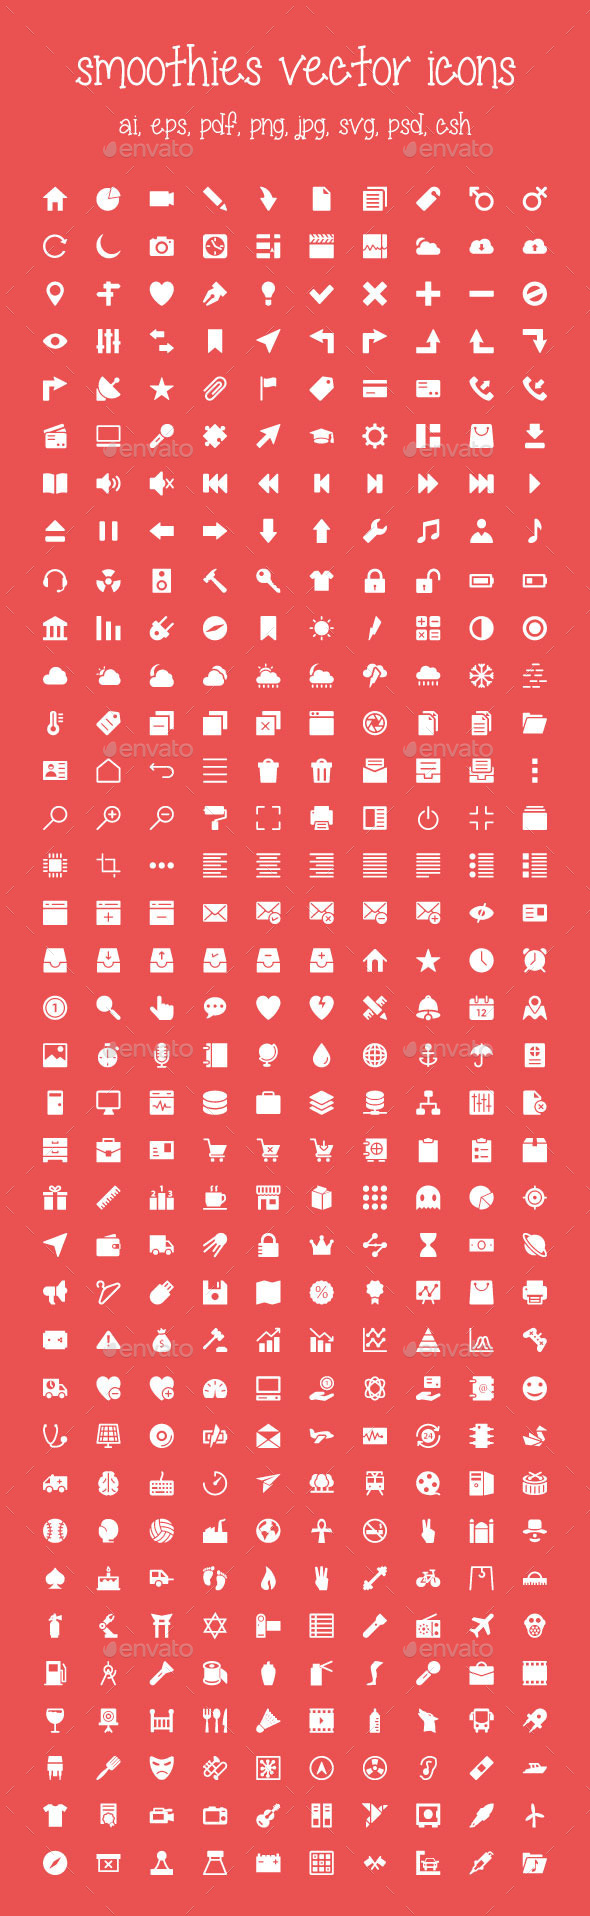 350+ Smoothies Vector Icons - Web Icons